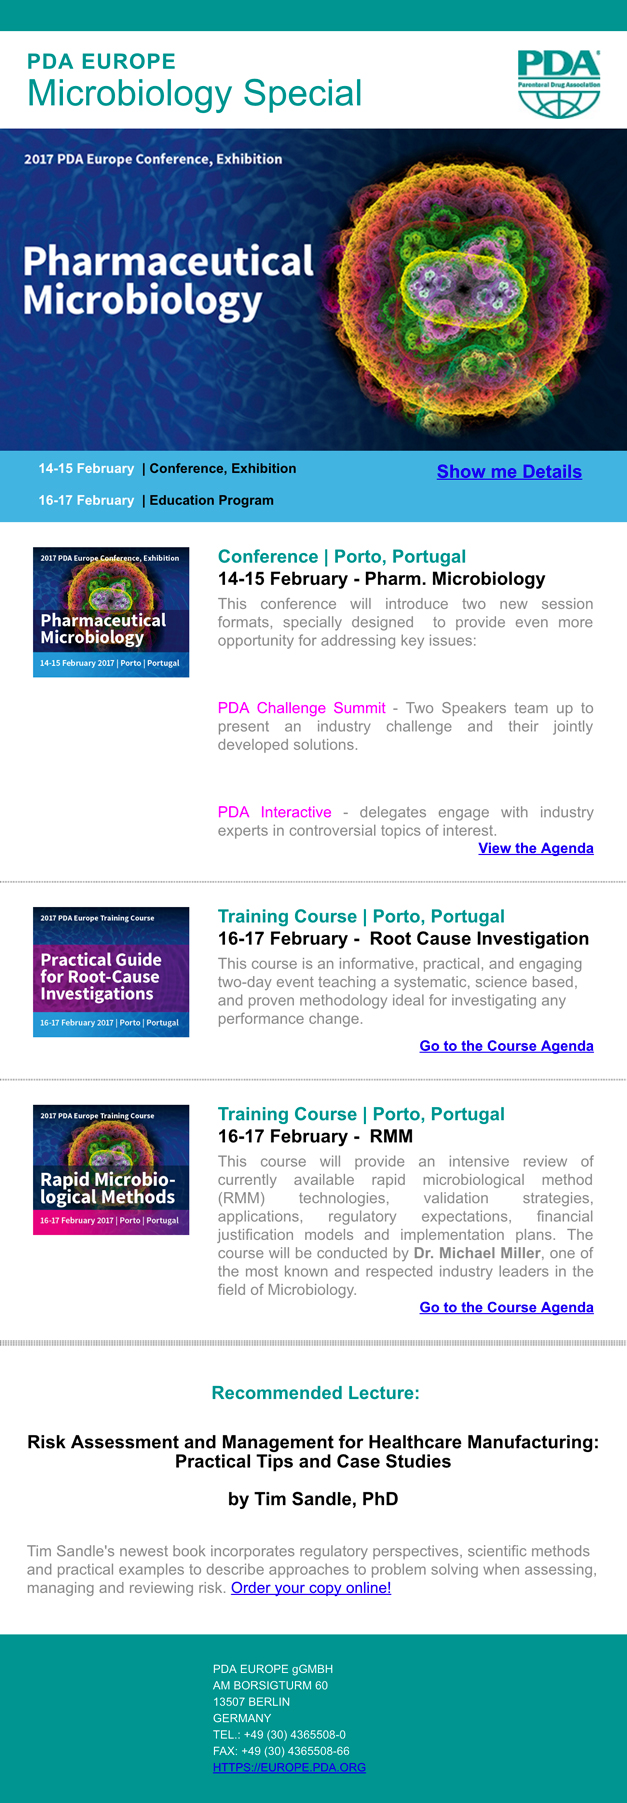 PDA-Europe---Pharmaceutical-Microbiology-Conference-Special-Newsletter